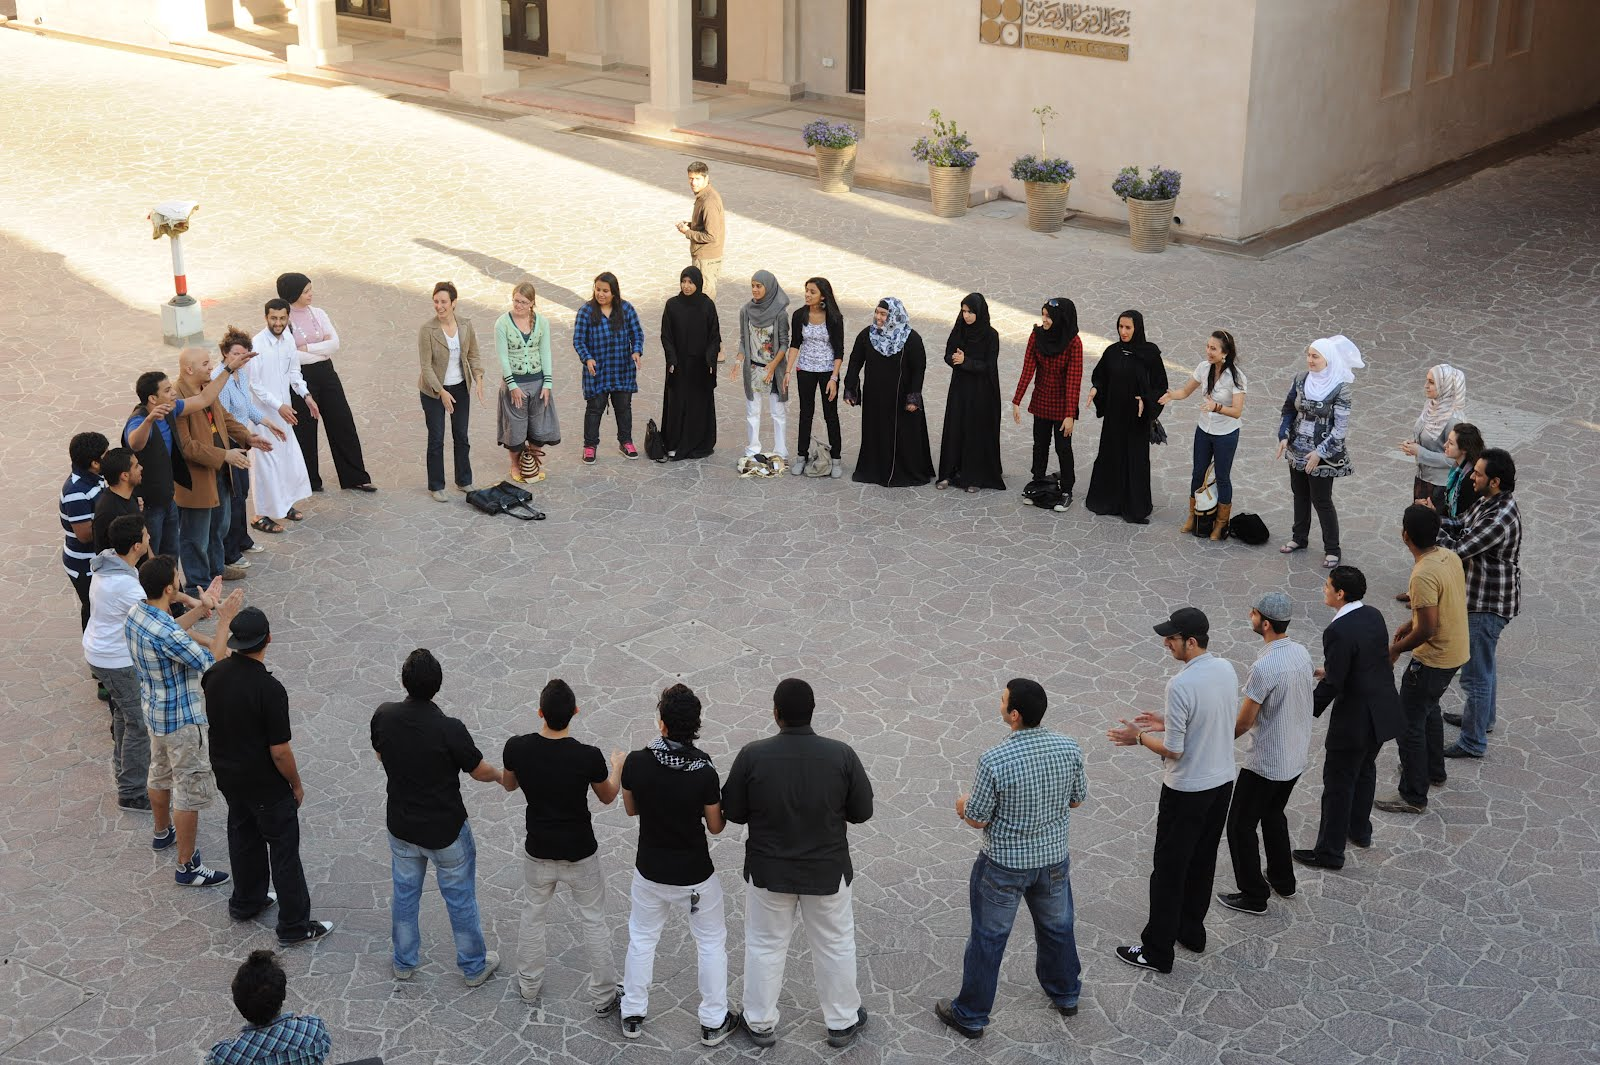 Qatar Culture Club: Youth in Qatar